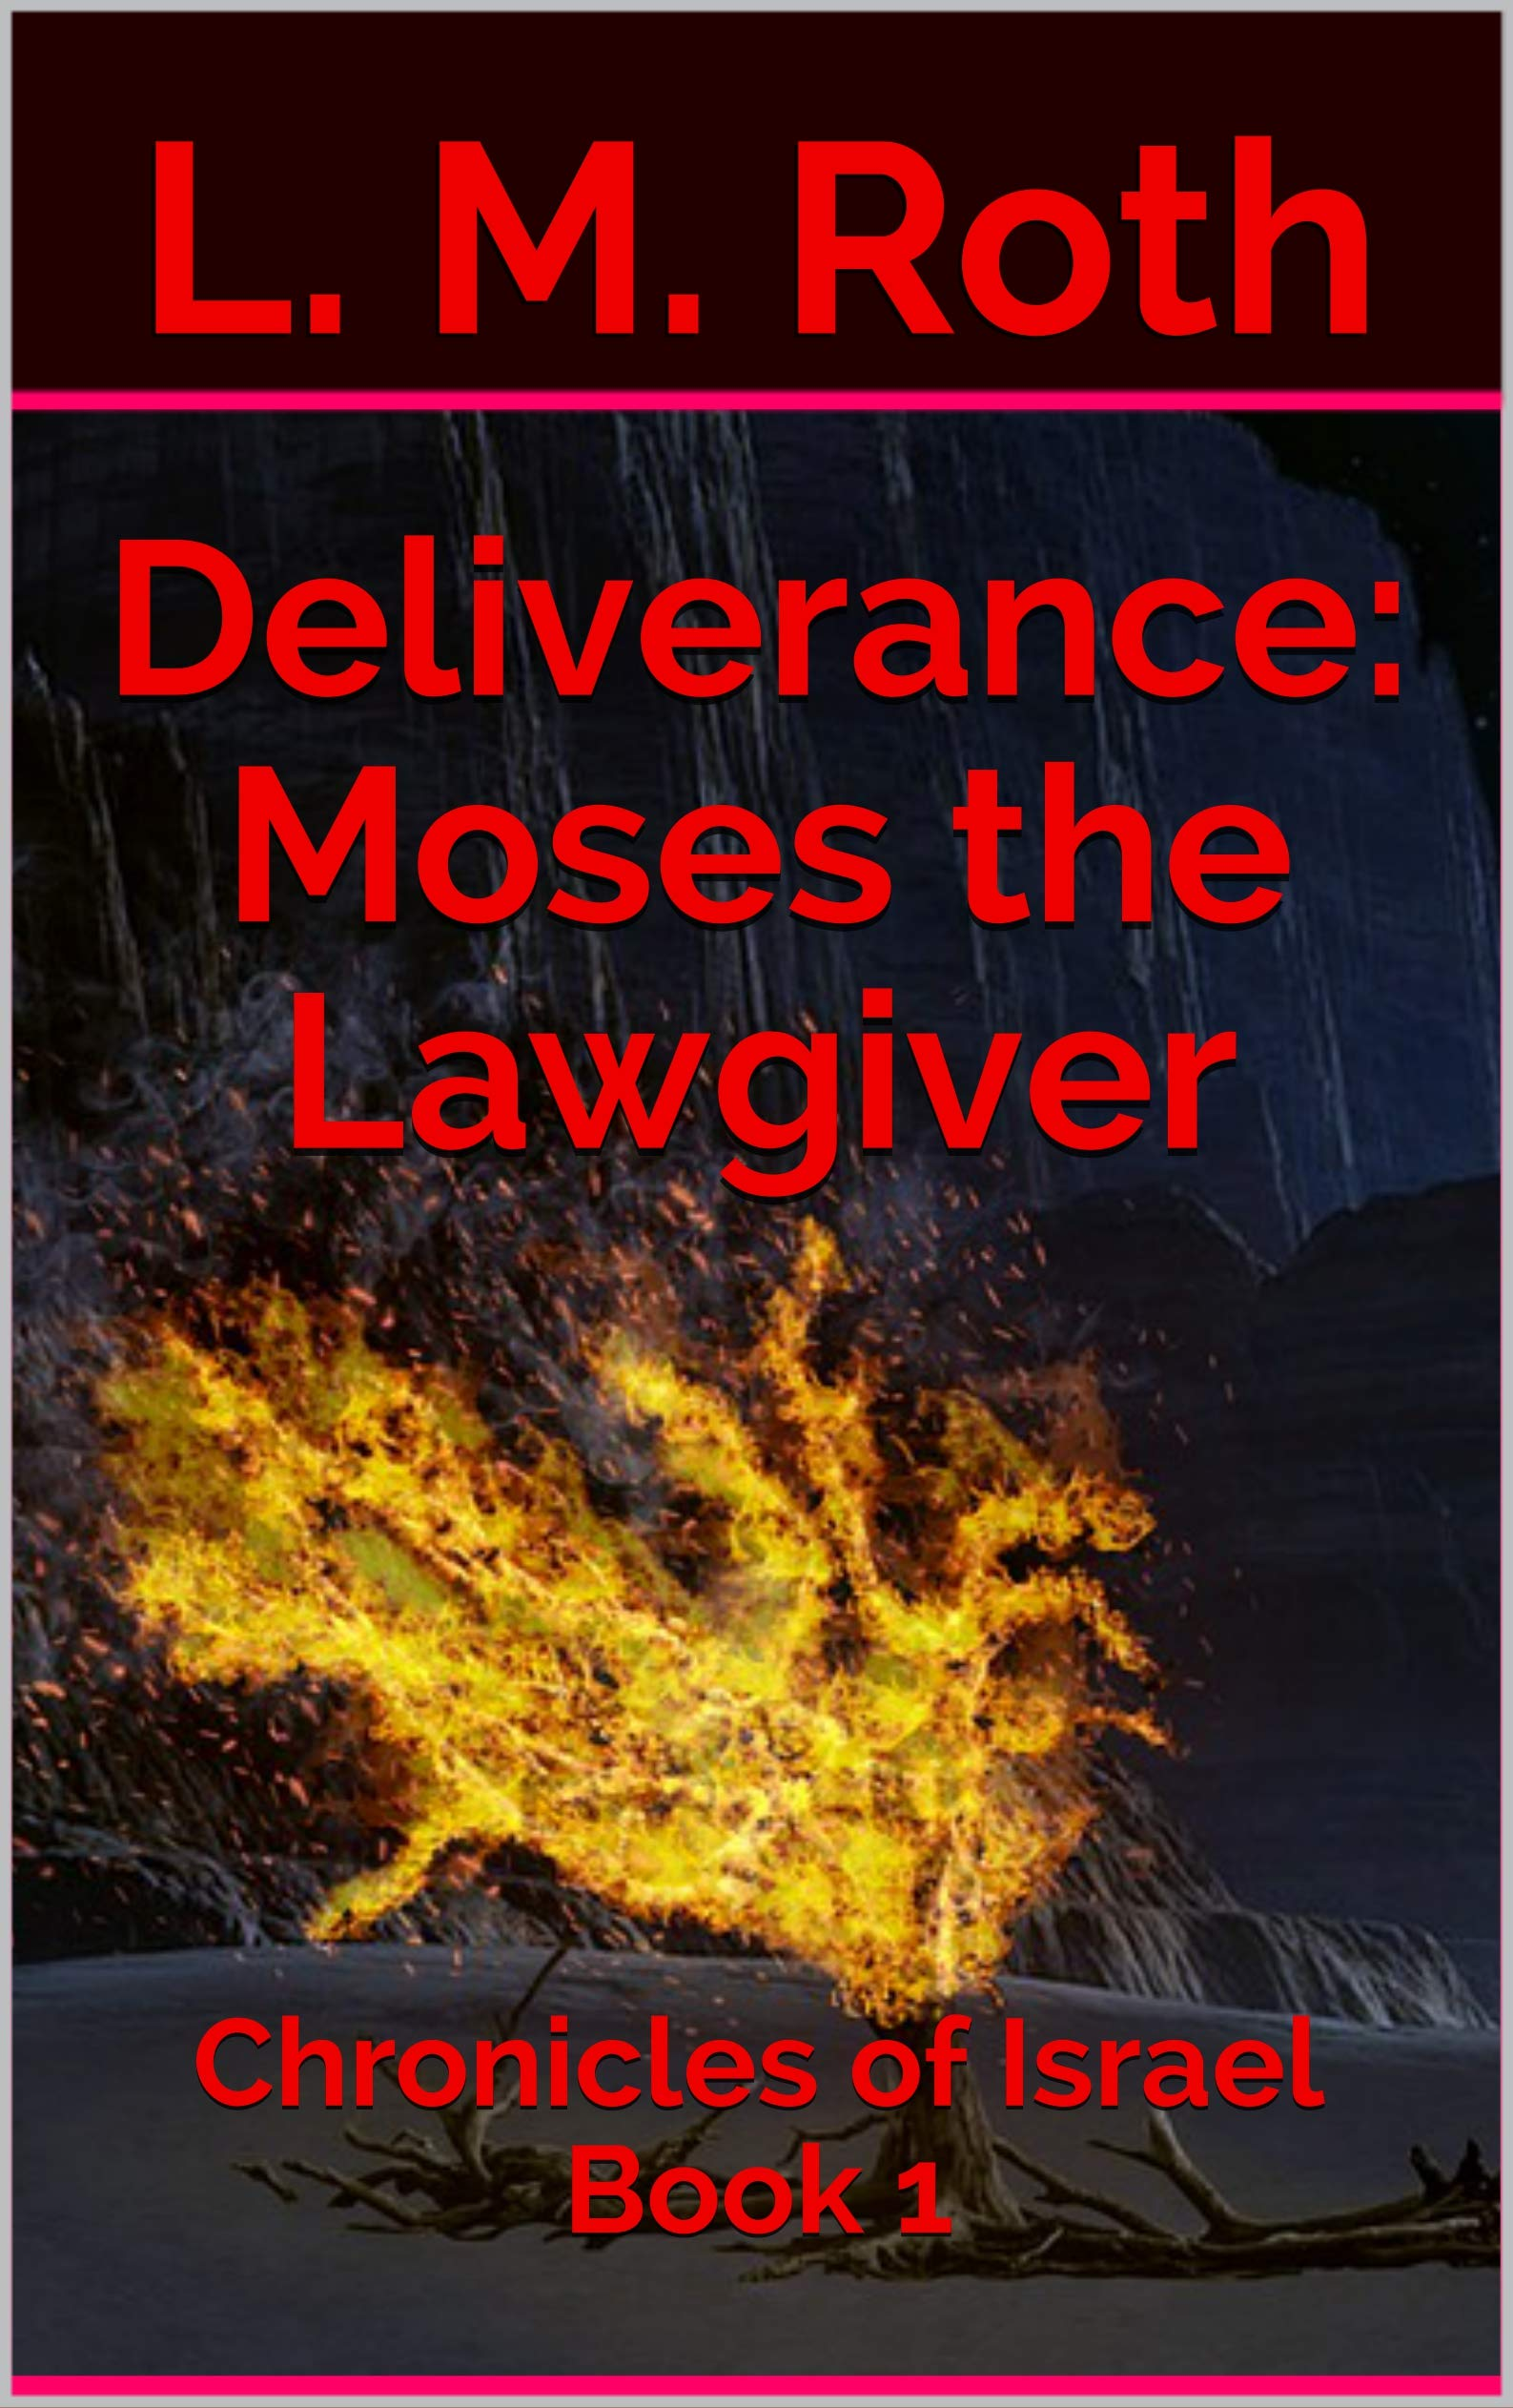 Deliverance: Moses the Lawgiver: Chronicles of Israel Book 1 por L. M. Roth